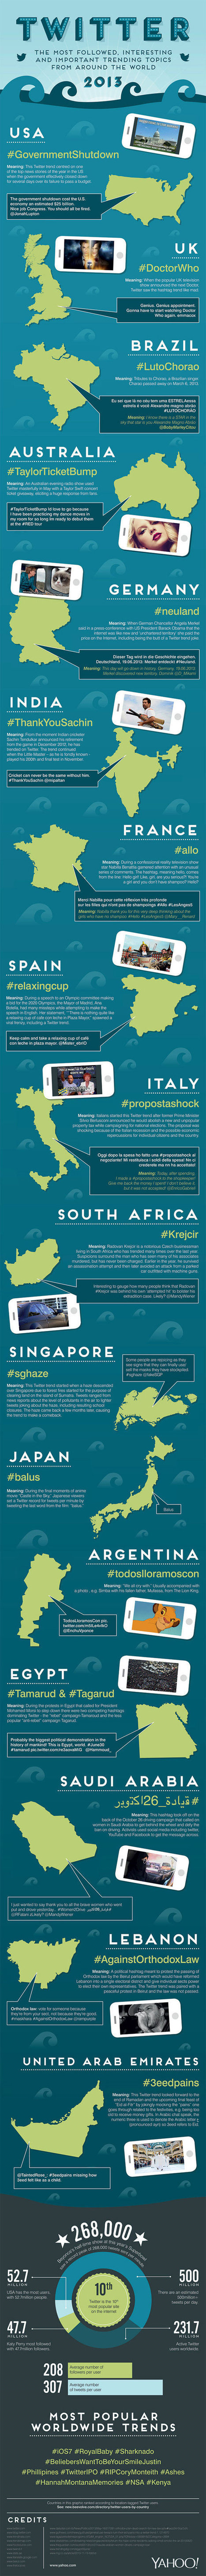 Around the world in 2013: The most important Twitter trends of the year | Edtech | Scoop.it